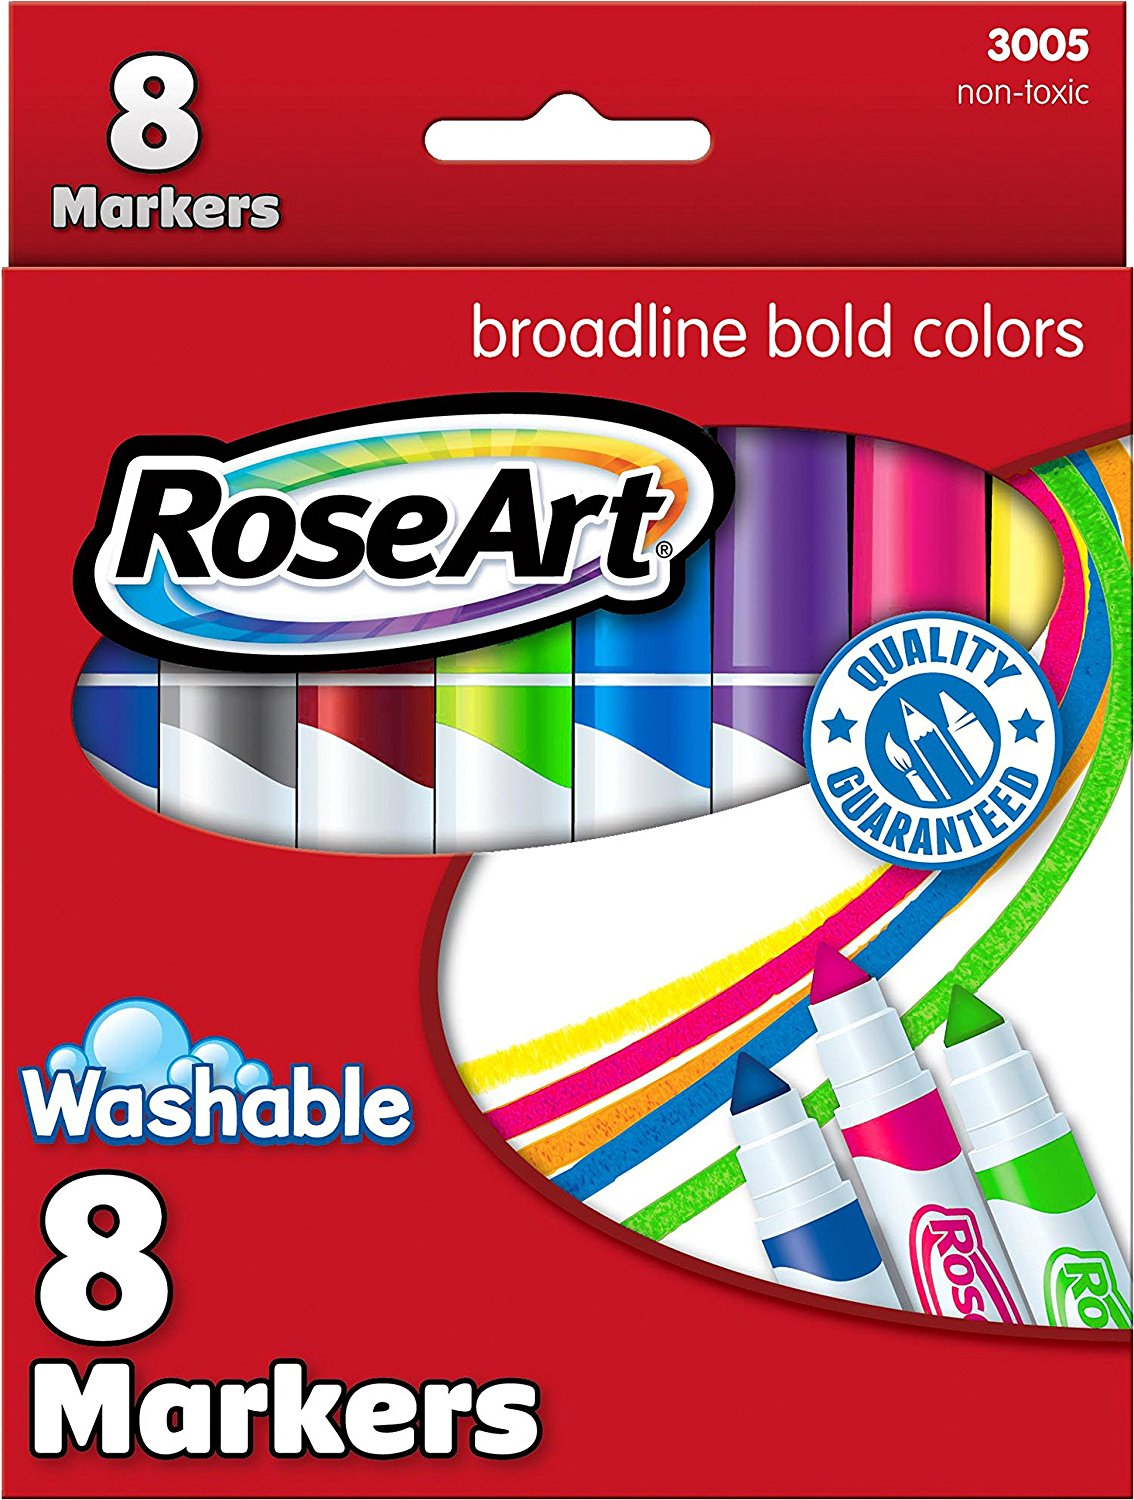 Mattel RoseArt Bold Washable Broadline Markers 8-Count Packaging May Vary CYC13